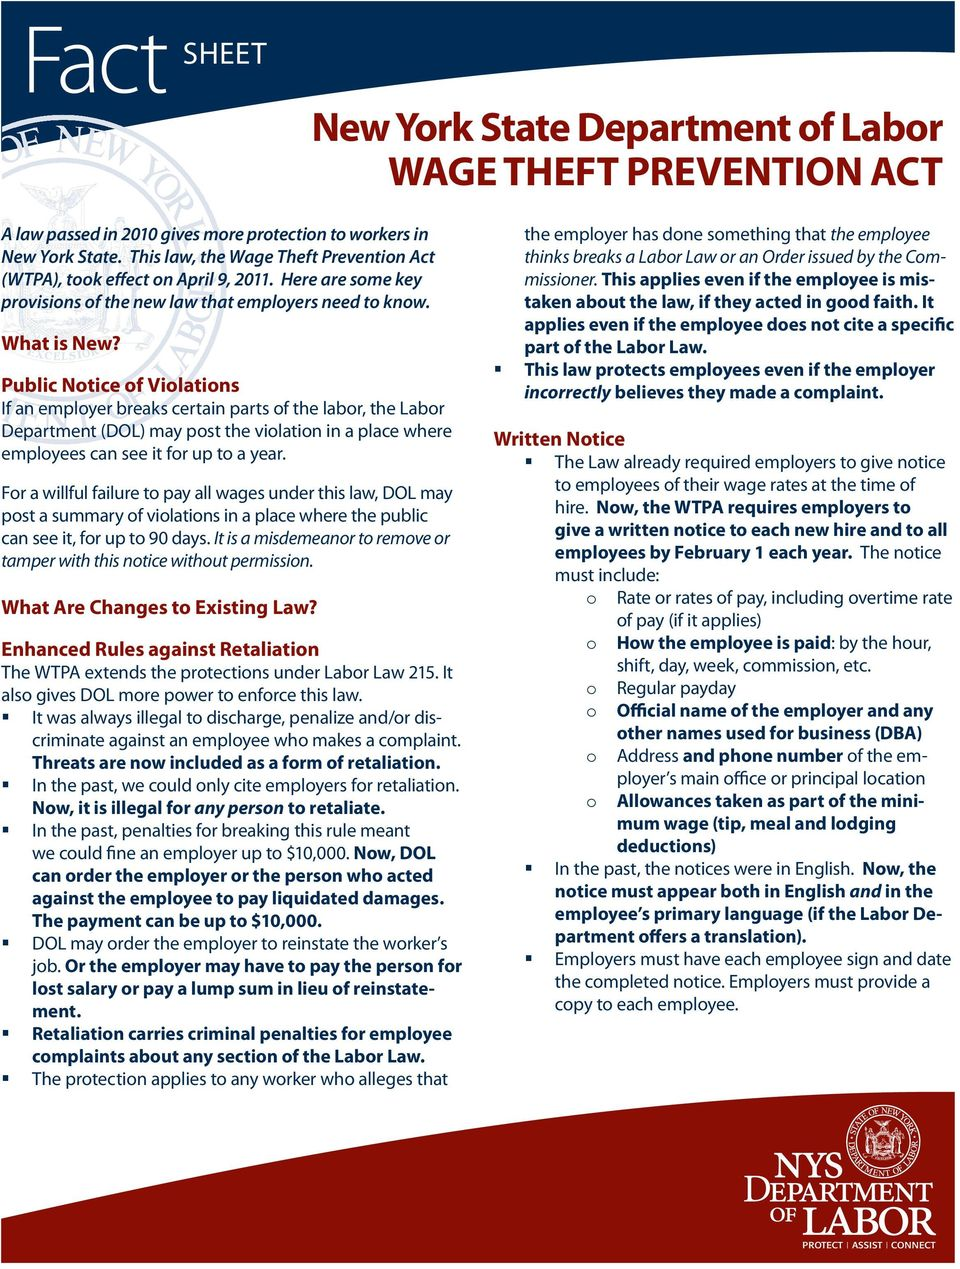 Public Notice of Violations If an employer breaks certain parts of the labor, the Labor Department (DOL) may post the violation in a place where employees can see it for up to a year.